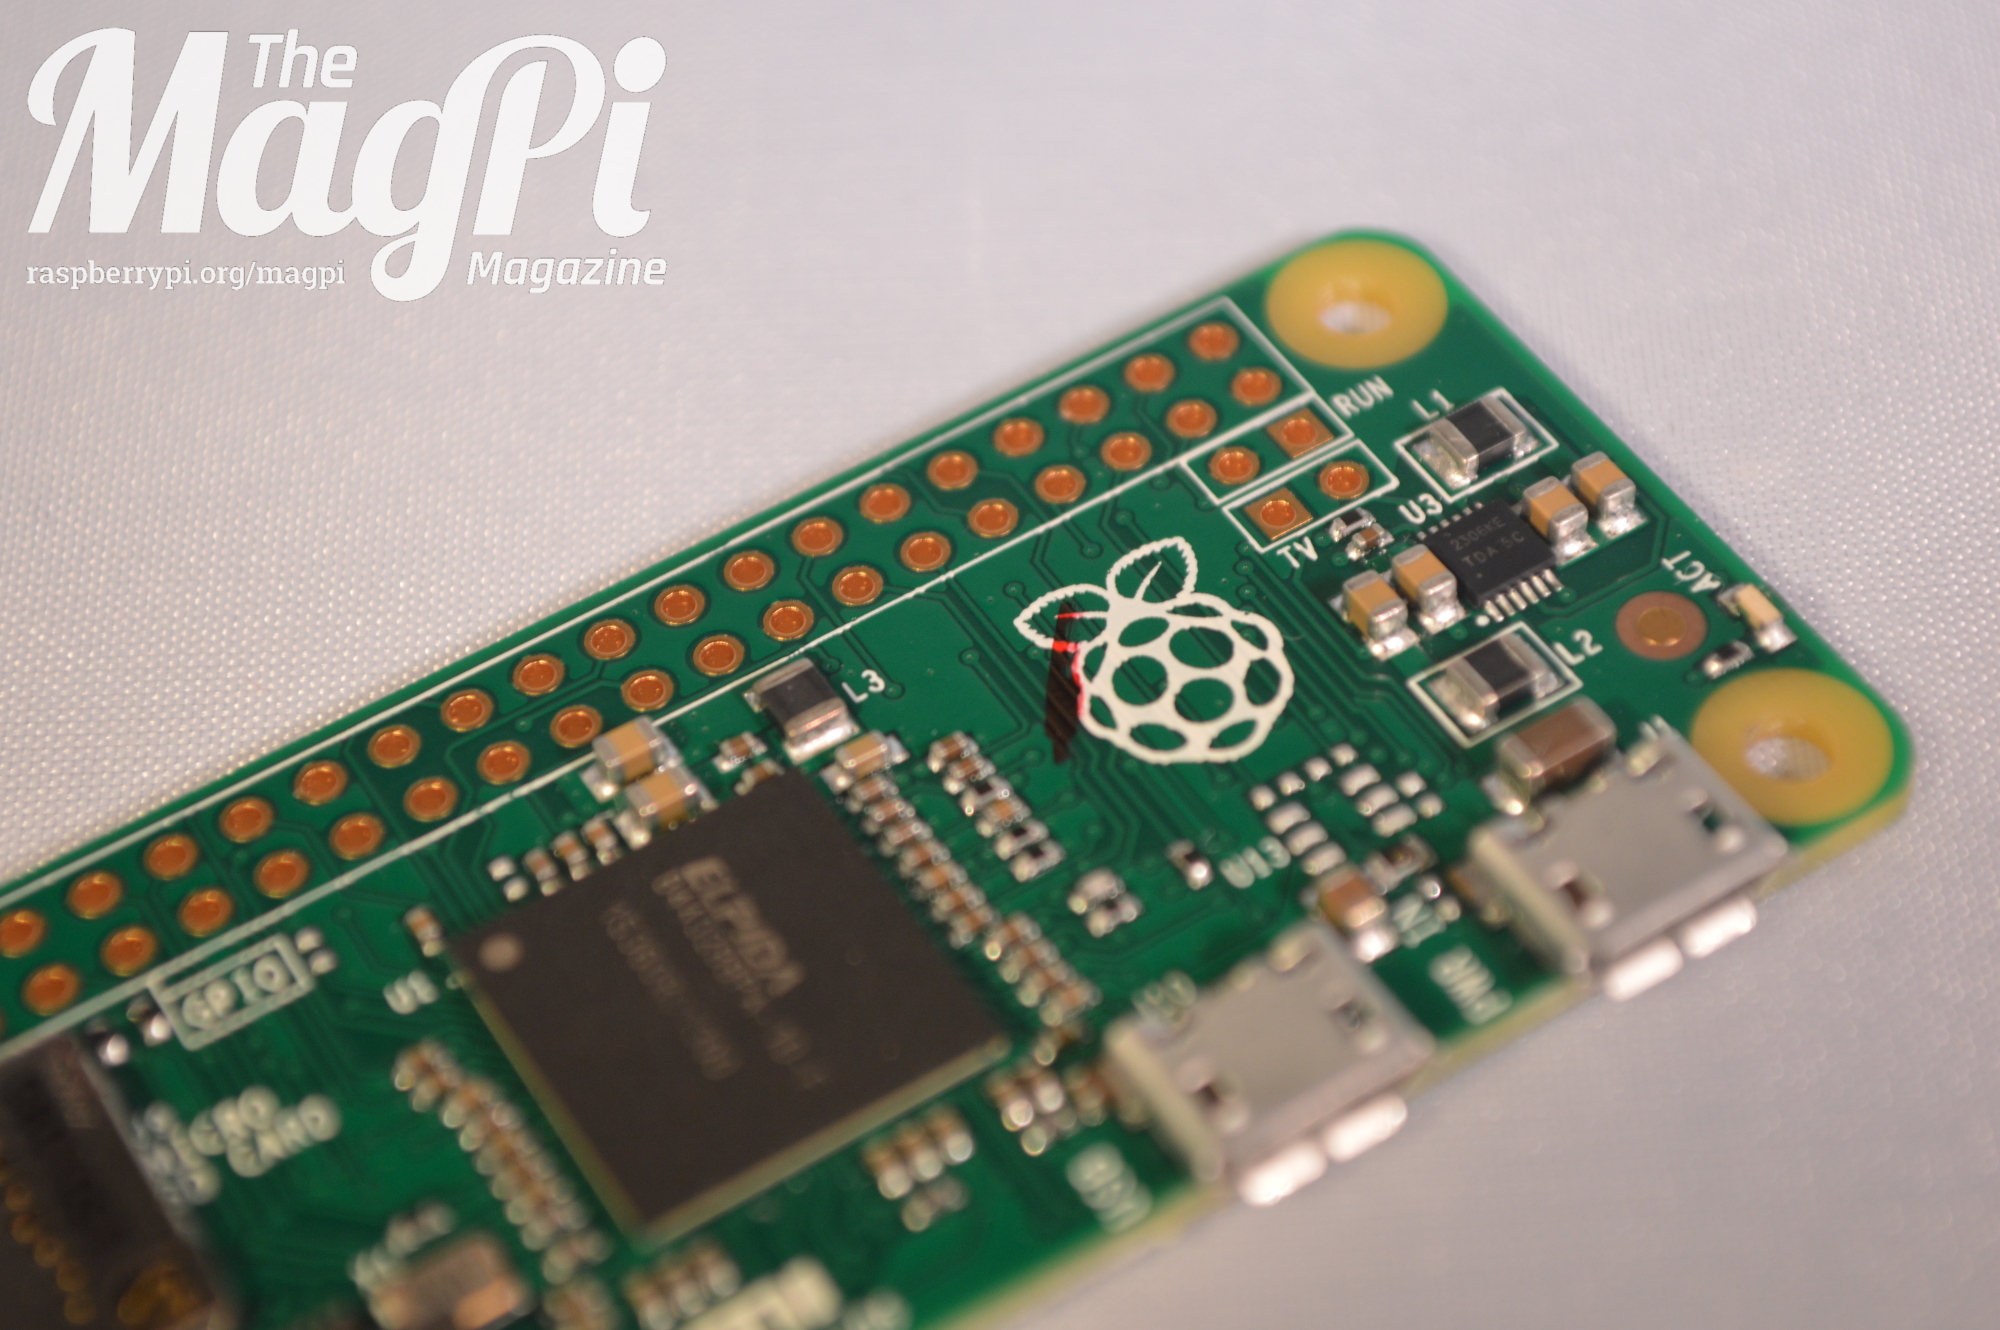 The final version of the Raspberry Pi Zero